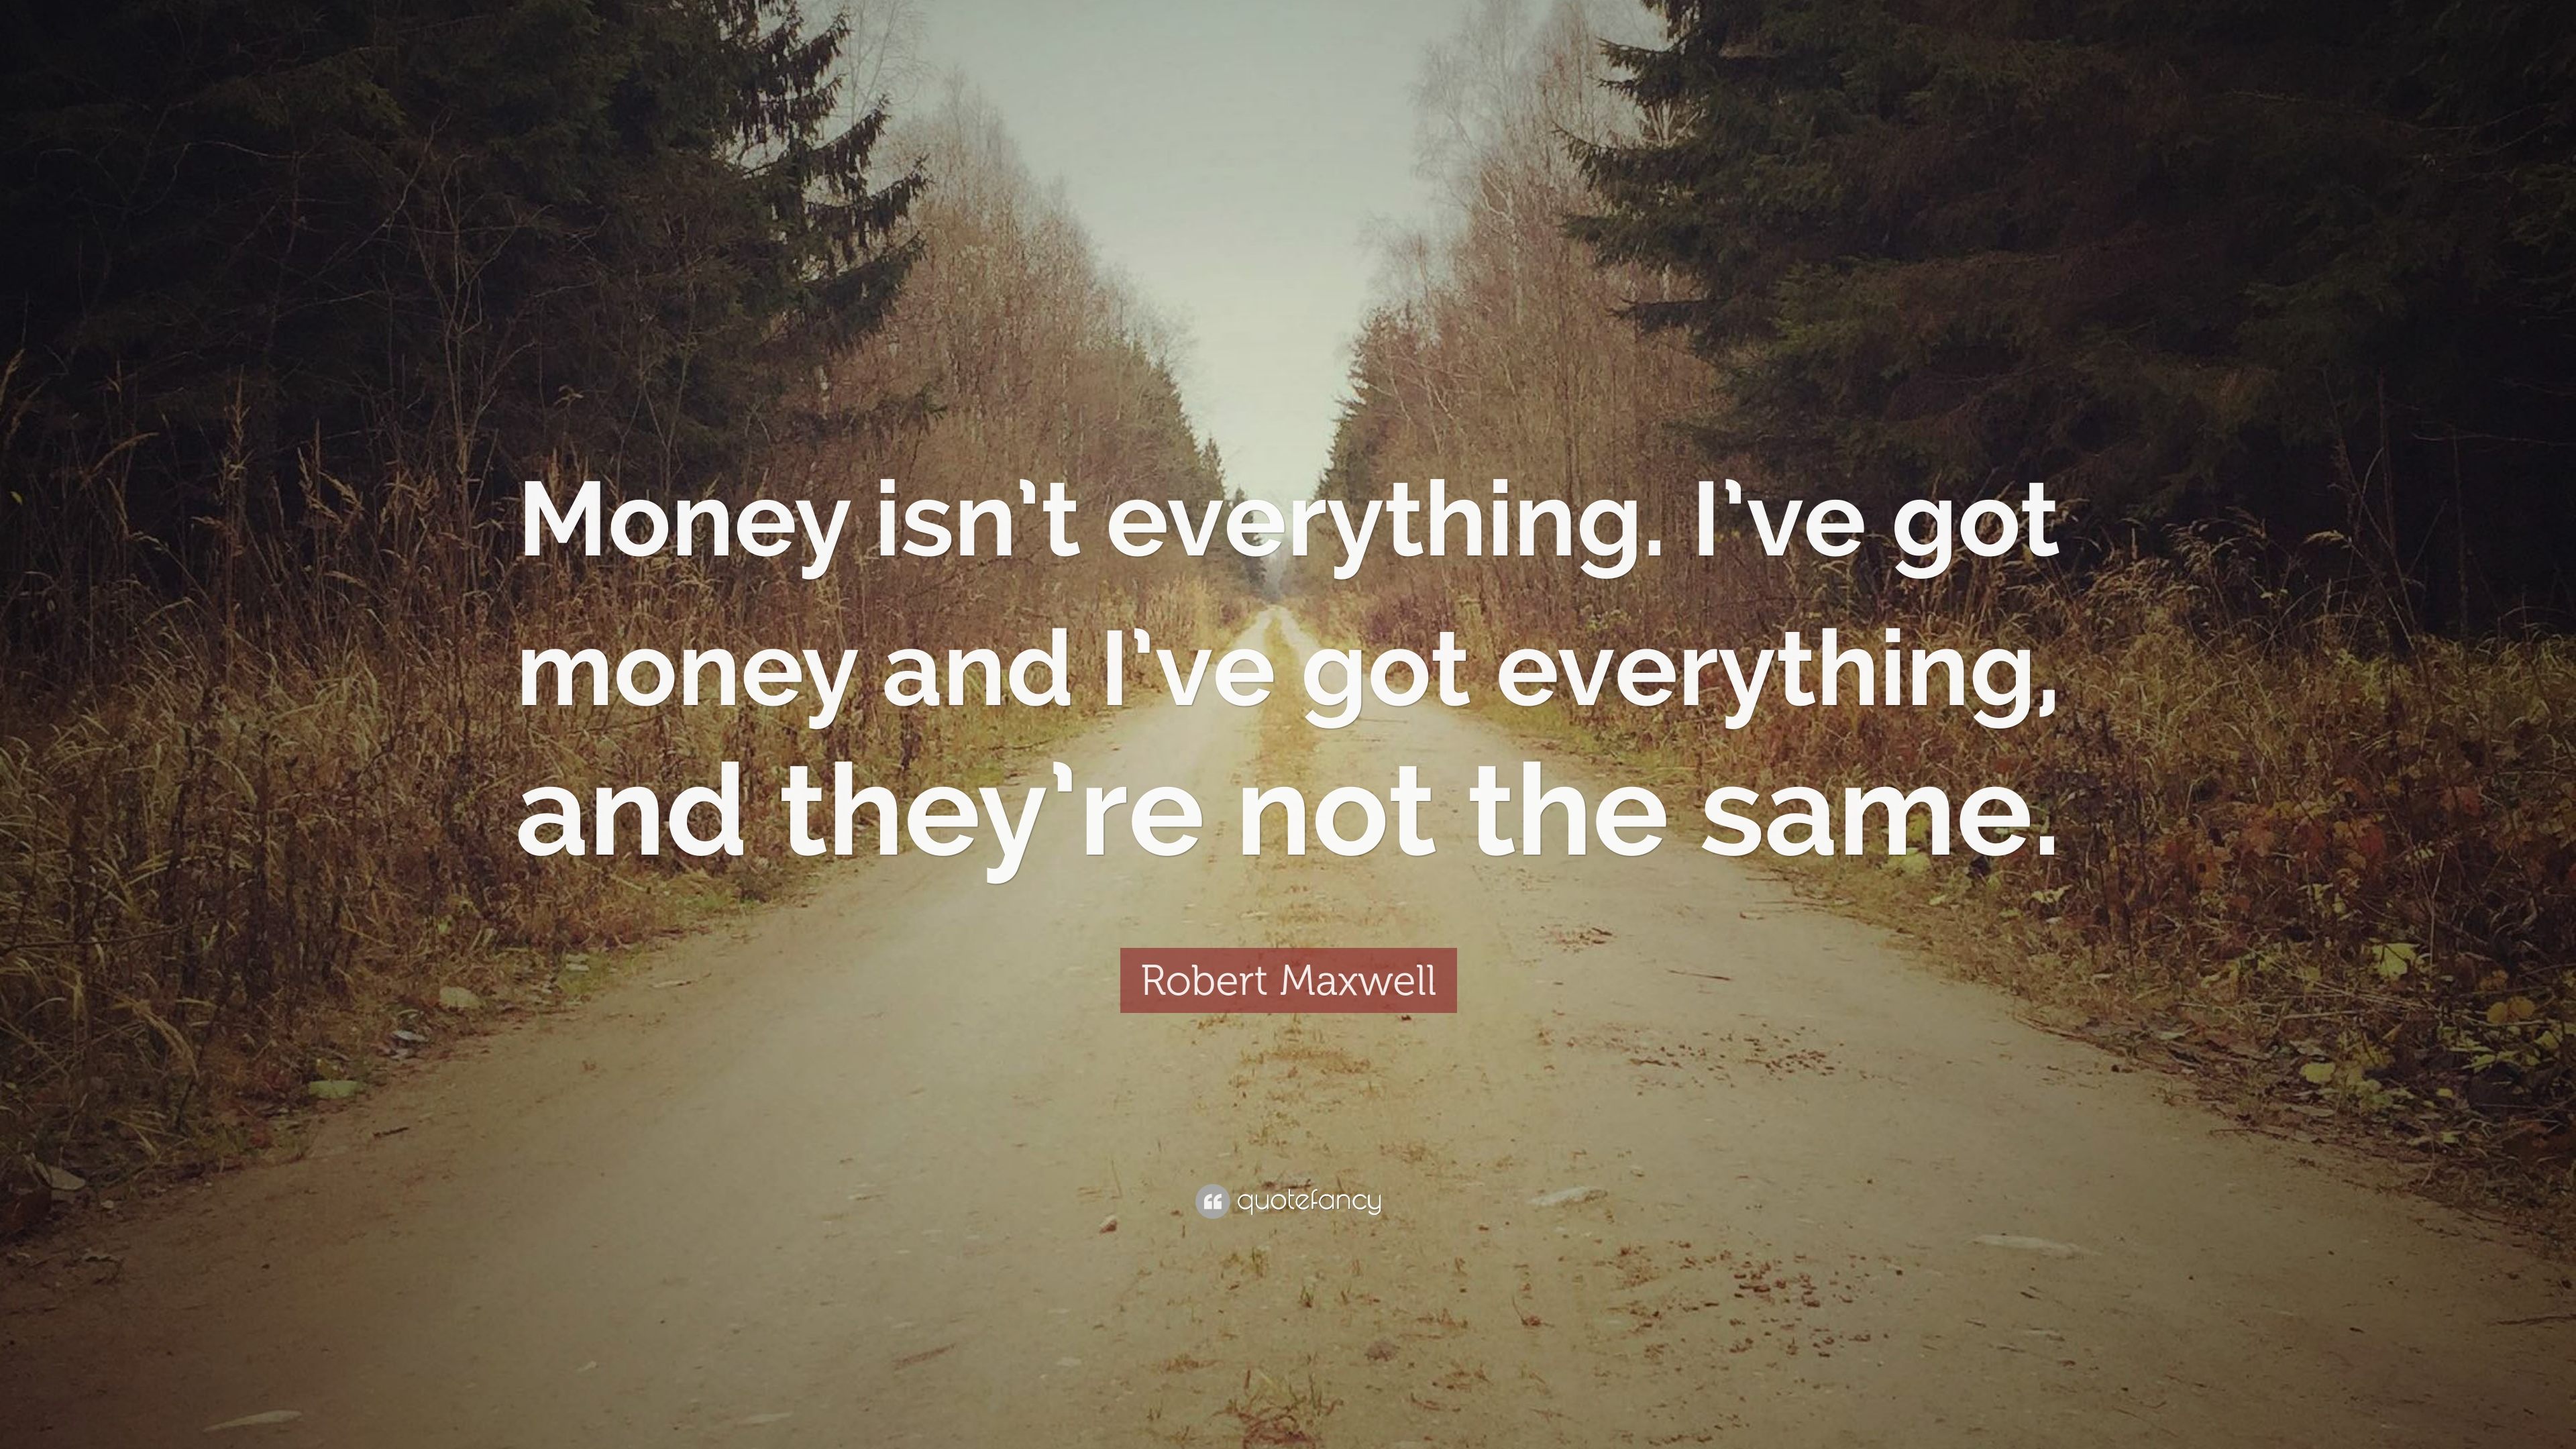 Robert Maxwell Quote Money Isnt Everything Ive Got Money And I